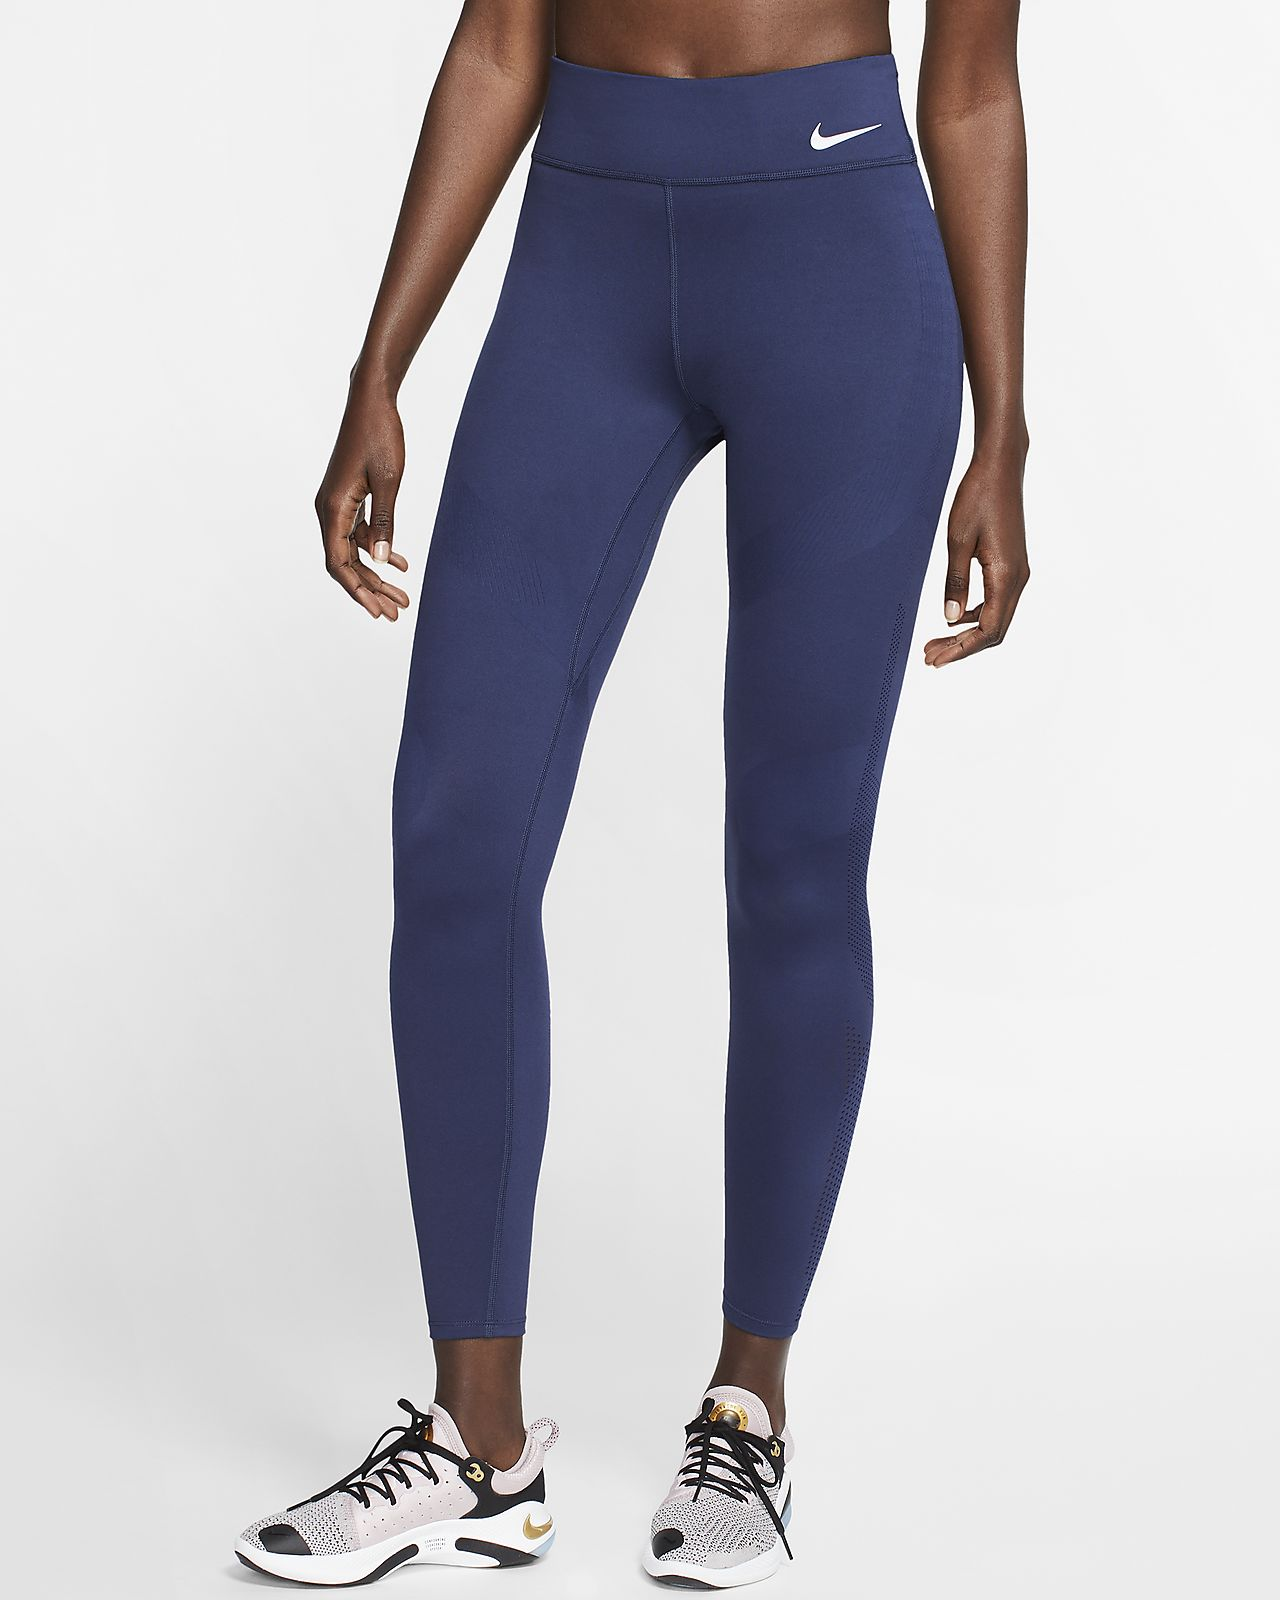 Nike TechKnit Epic Lux City Ready Women's Running Leggings